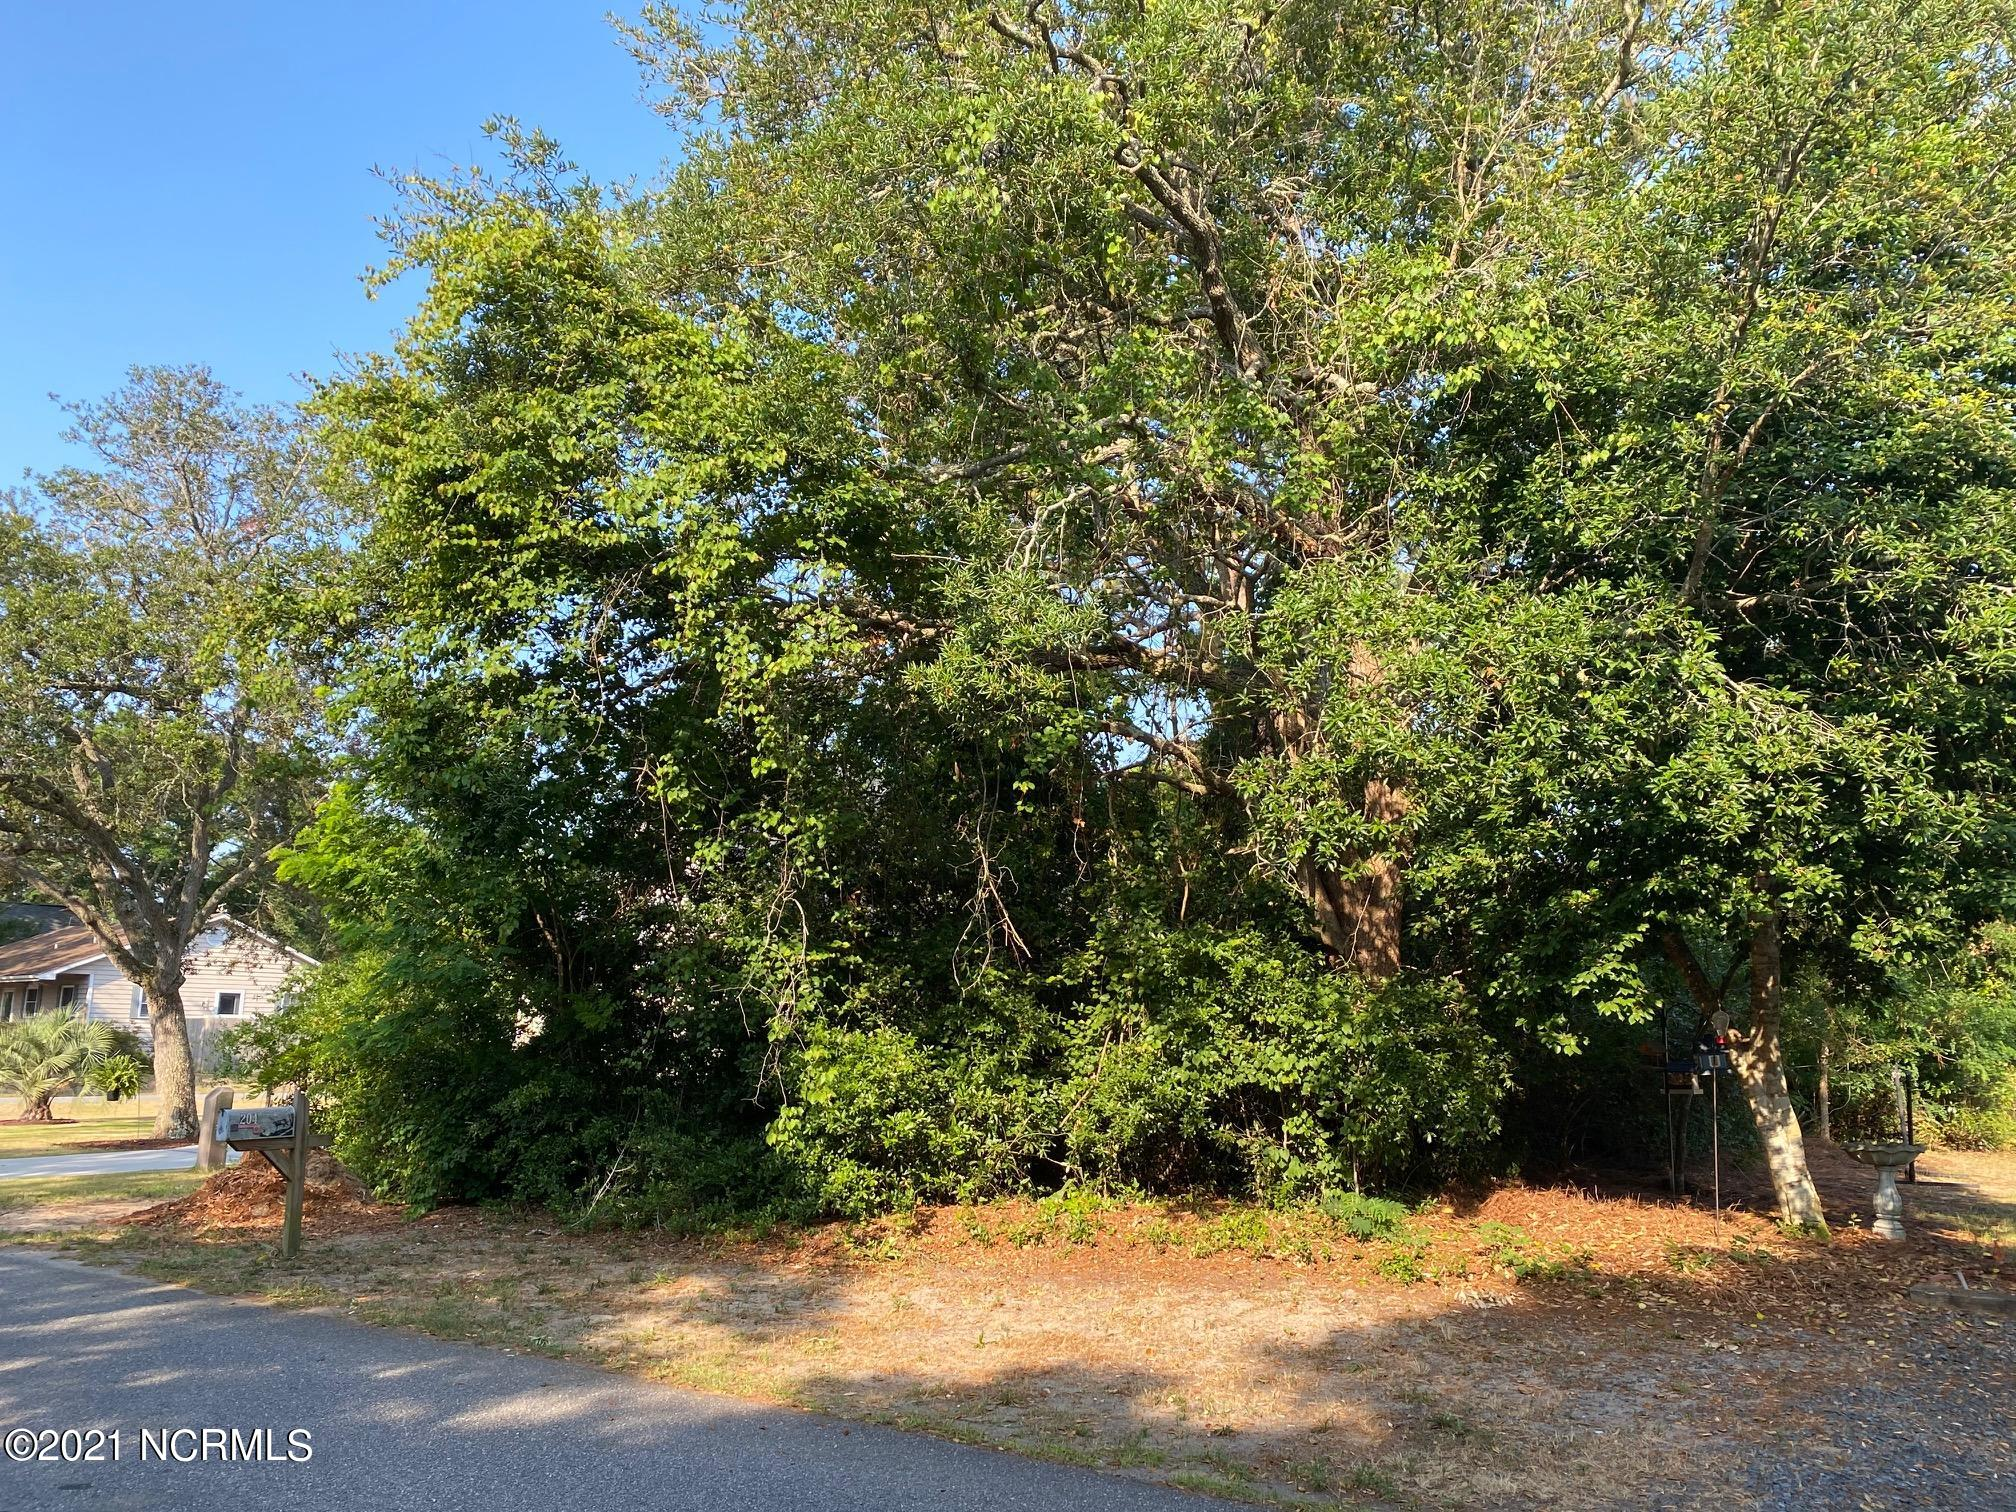 Don't miss this opportunity to own this quiet lot tucked away on a beautiful street, surrounded by lots of newer homes. The sewer tap fee has already been paid, so it is ready for you to build your dream home. Just a short golf cart ride to the beach or your favorite shops and restaurants!